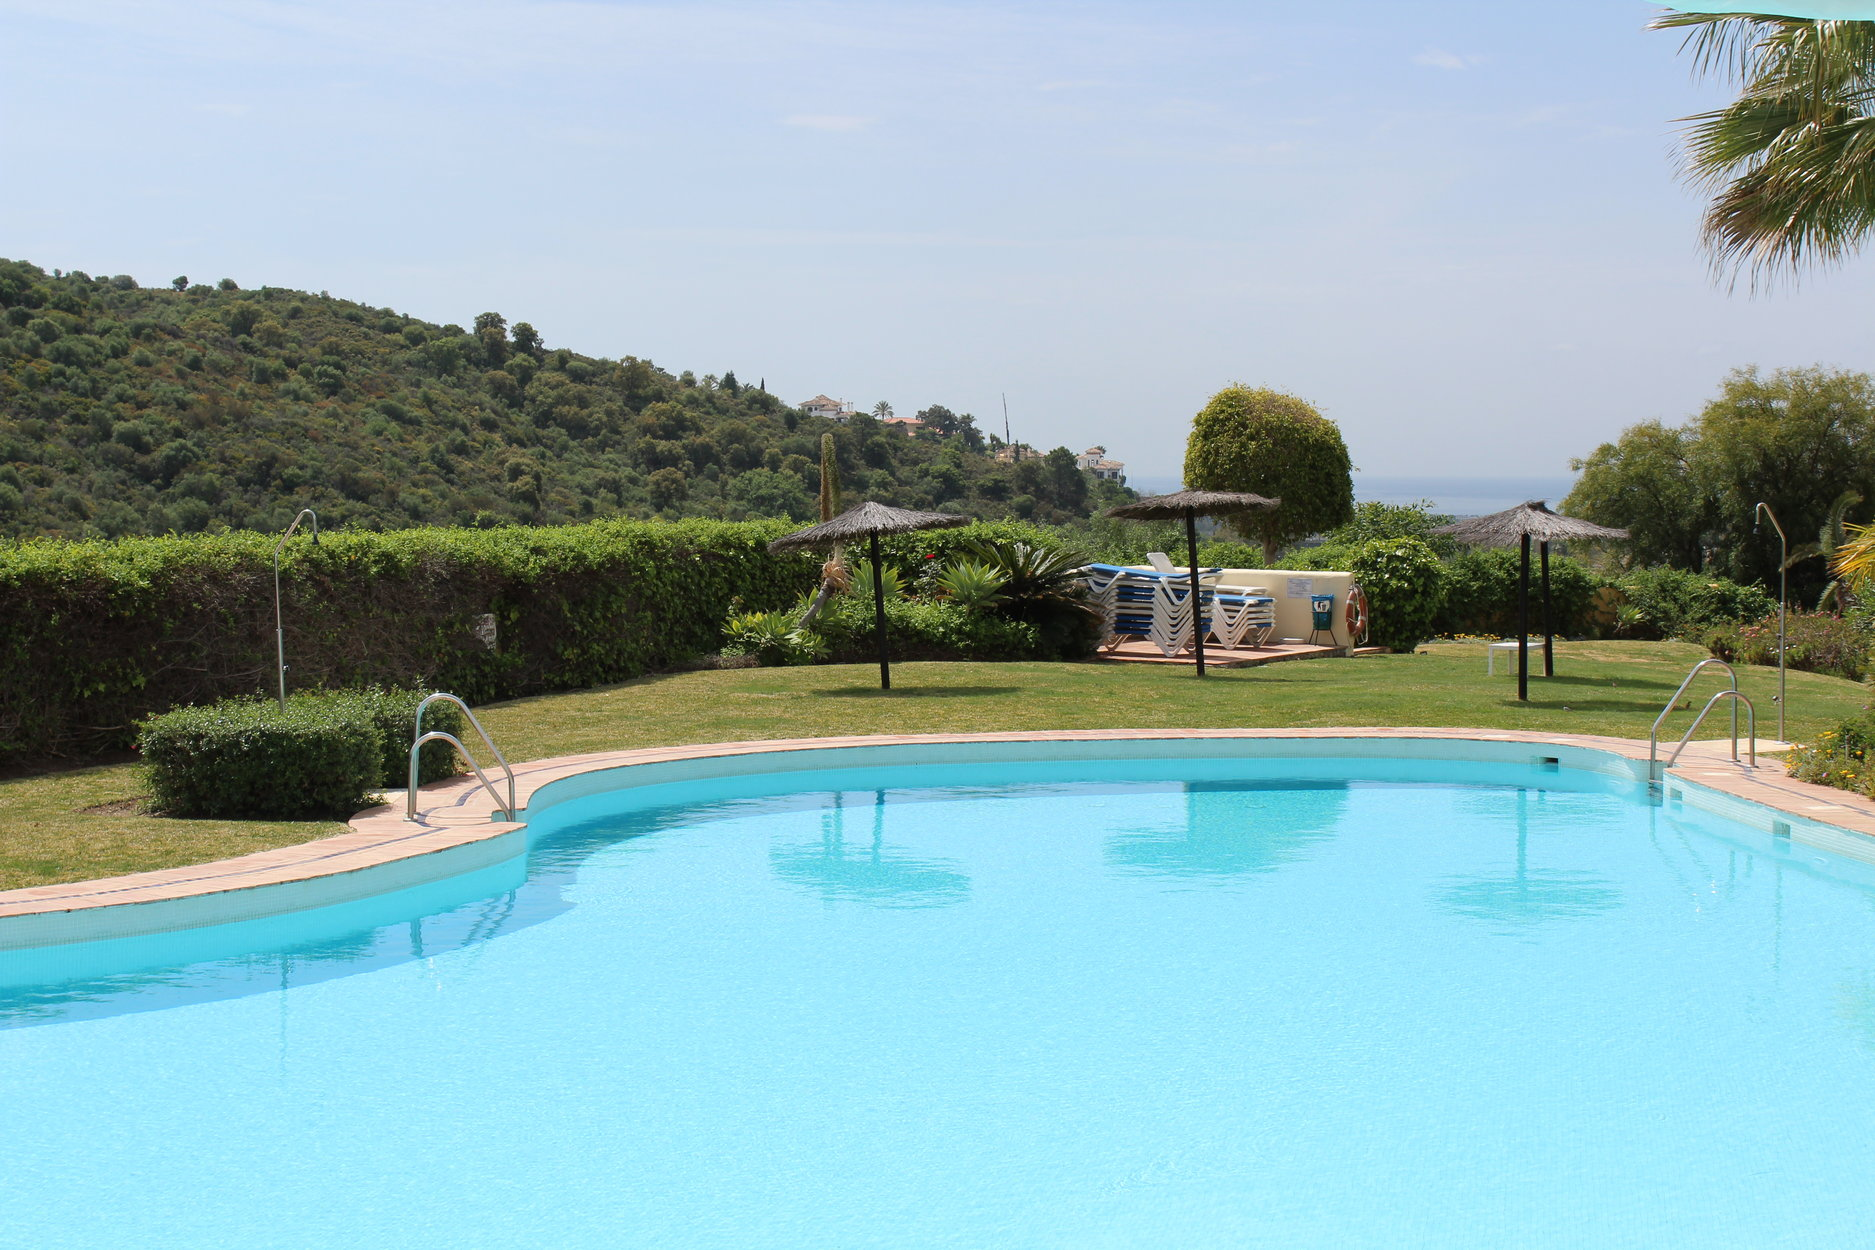 Appartement en vente à Benahavis